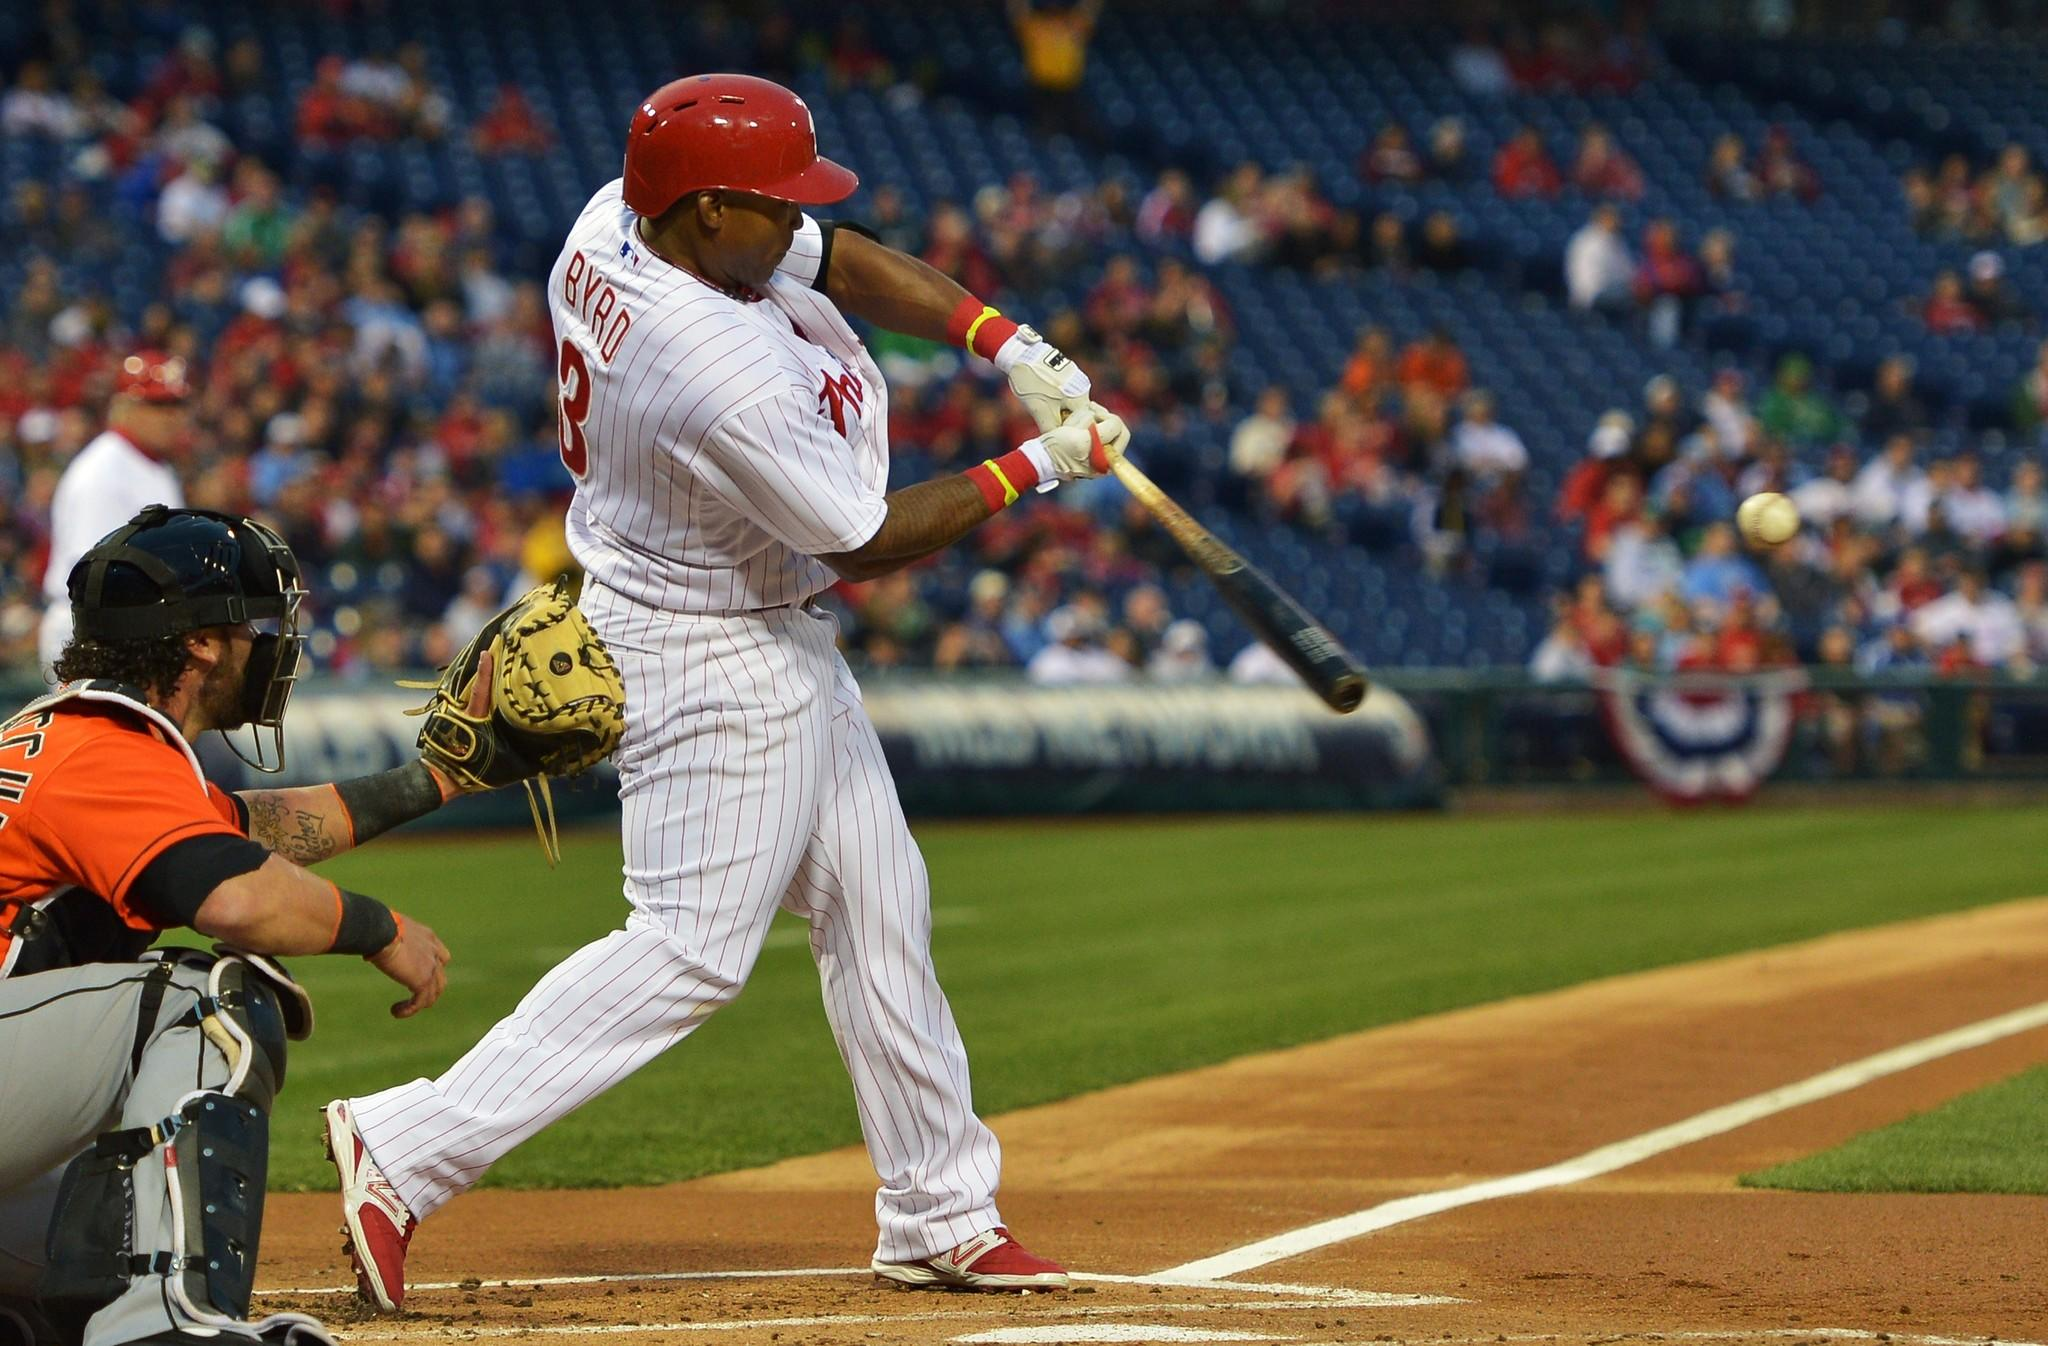 Marlon Byrd #3 of the Philadelphia Phillies hits a one run double in the first inning against the Miami Marlins at Citizens Bank Park on April 11, 2014 in Philadelphia, Pennsylvania.